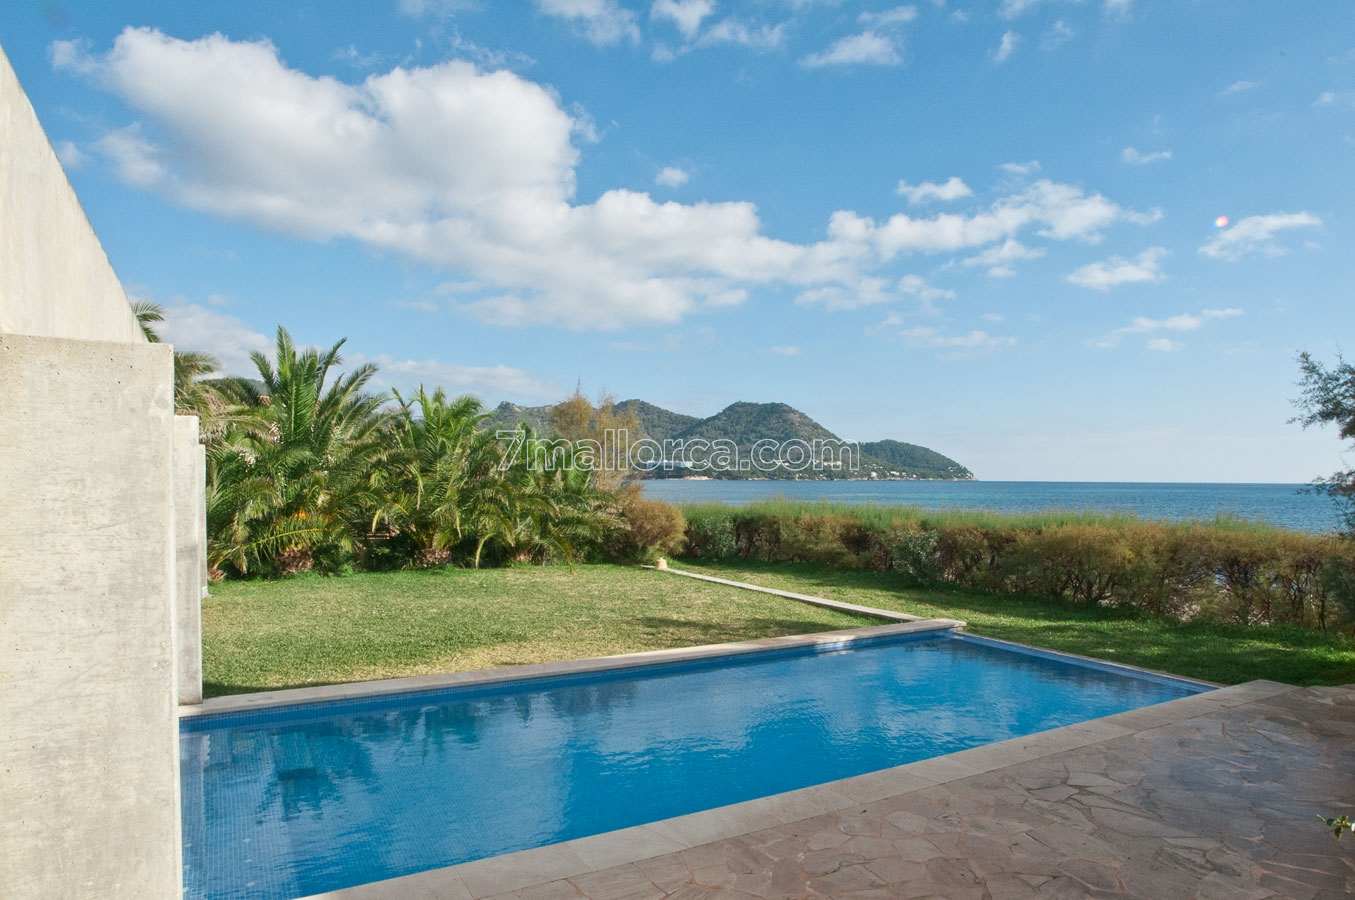 mallorca.beach.pool.apartment.cheap